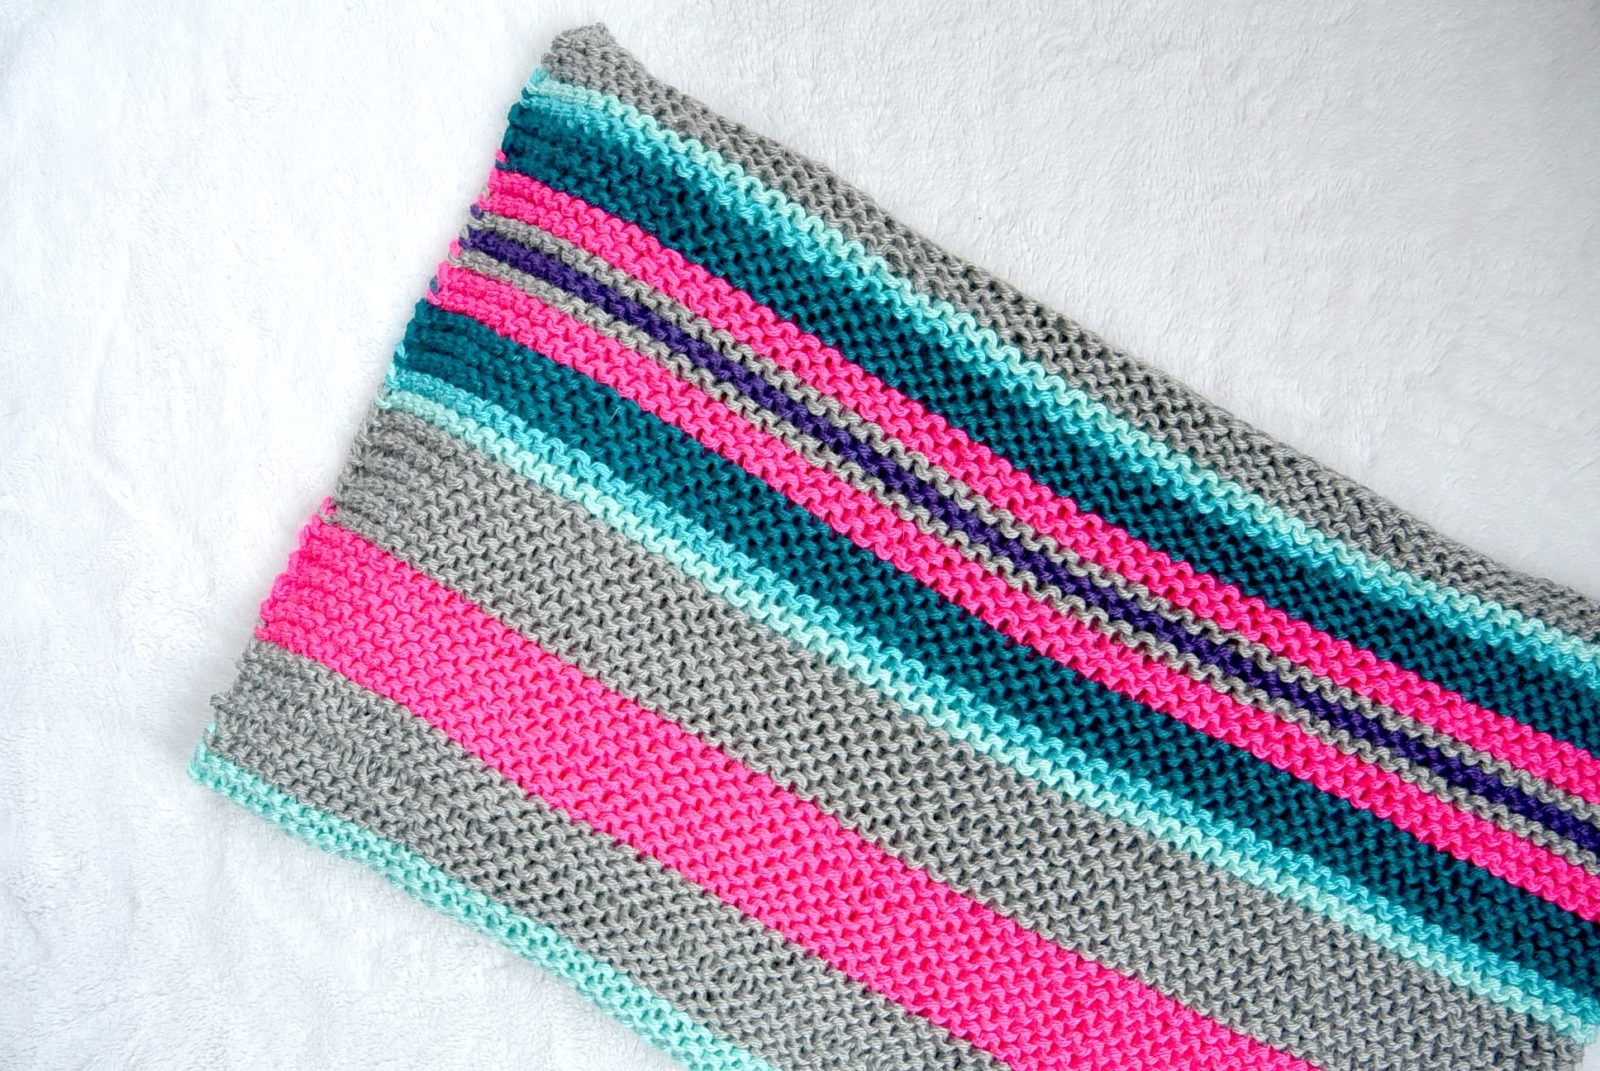 Knit Blanket Pattern Size 13 Needles : Easy Native Stripes Knit Blanket / Throw   Mama In A Stitch